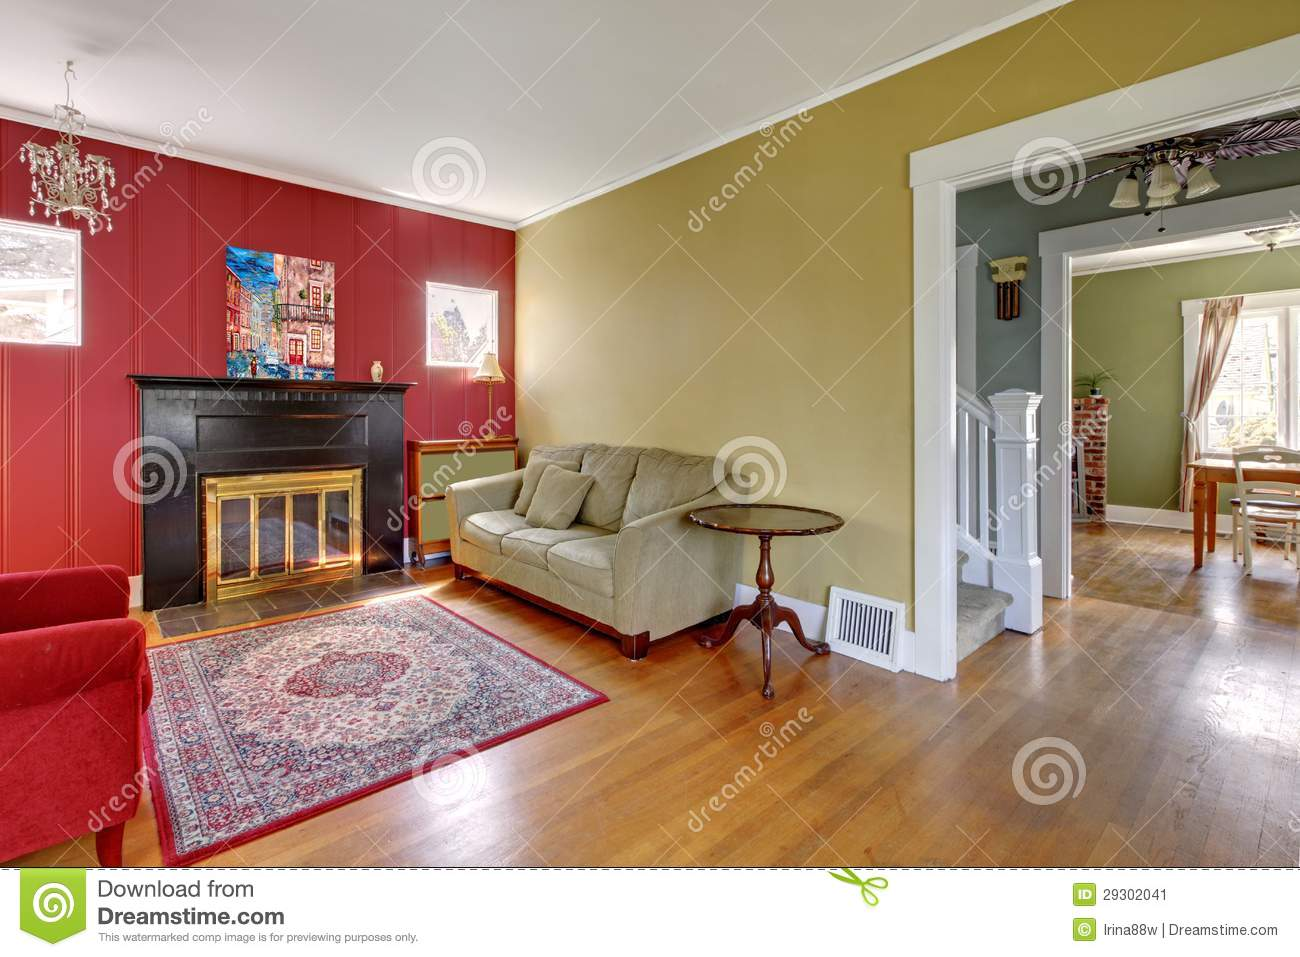 Living Room With Red And Yellow Walls And Fireplace Stock